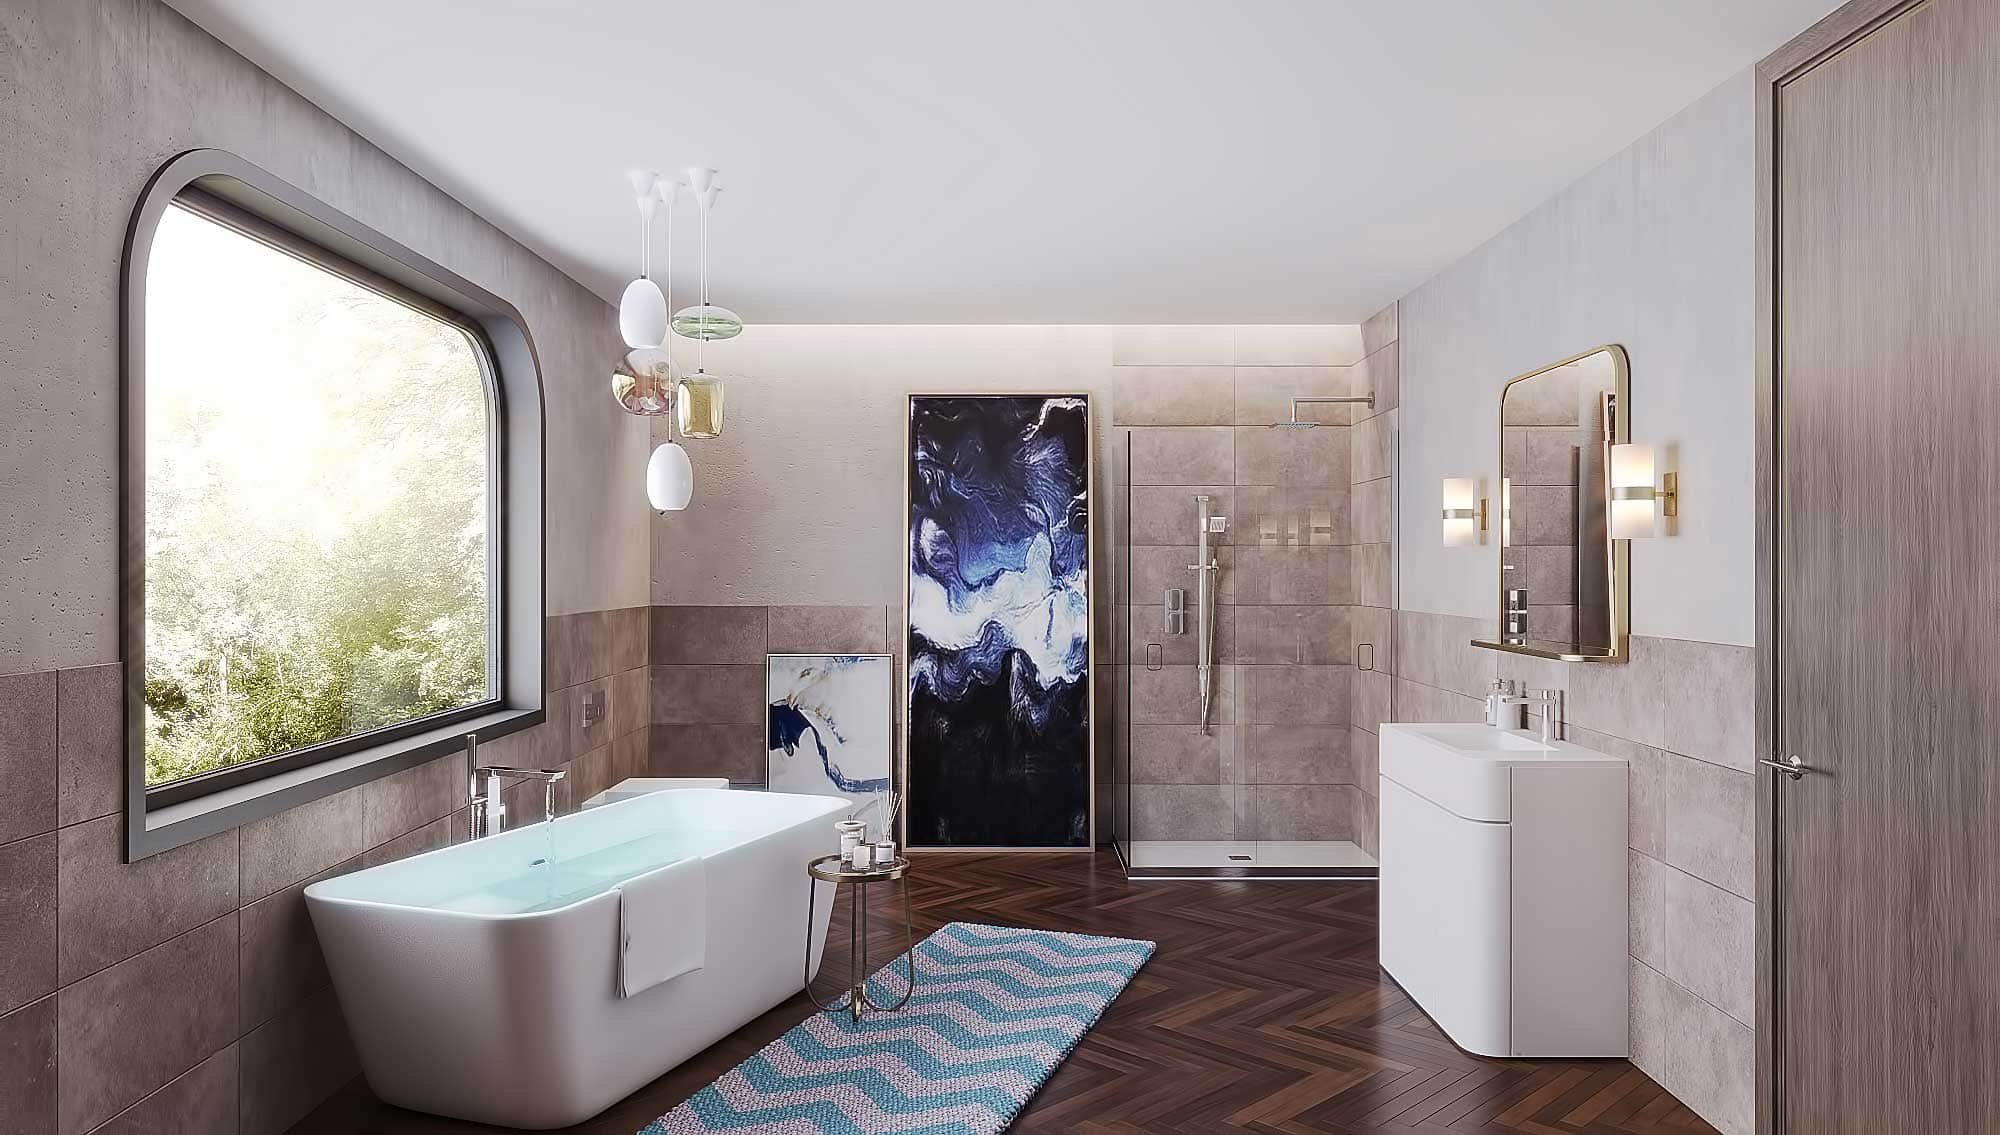 Salacia of London- Beautiful Bathroom Designs